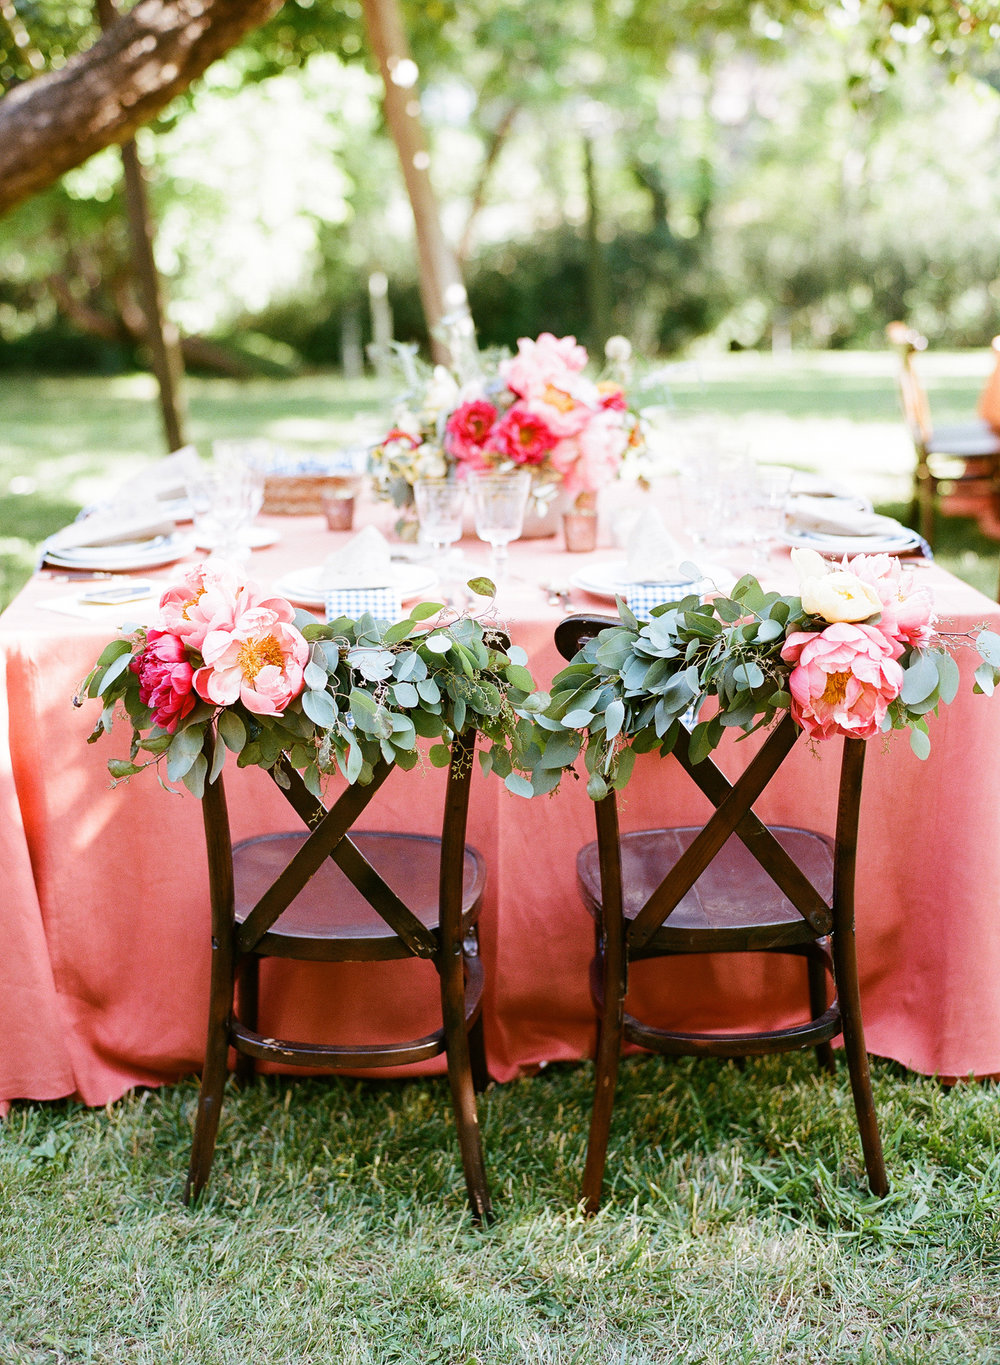 34-peony-chair-wedding-preppy.jpg